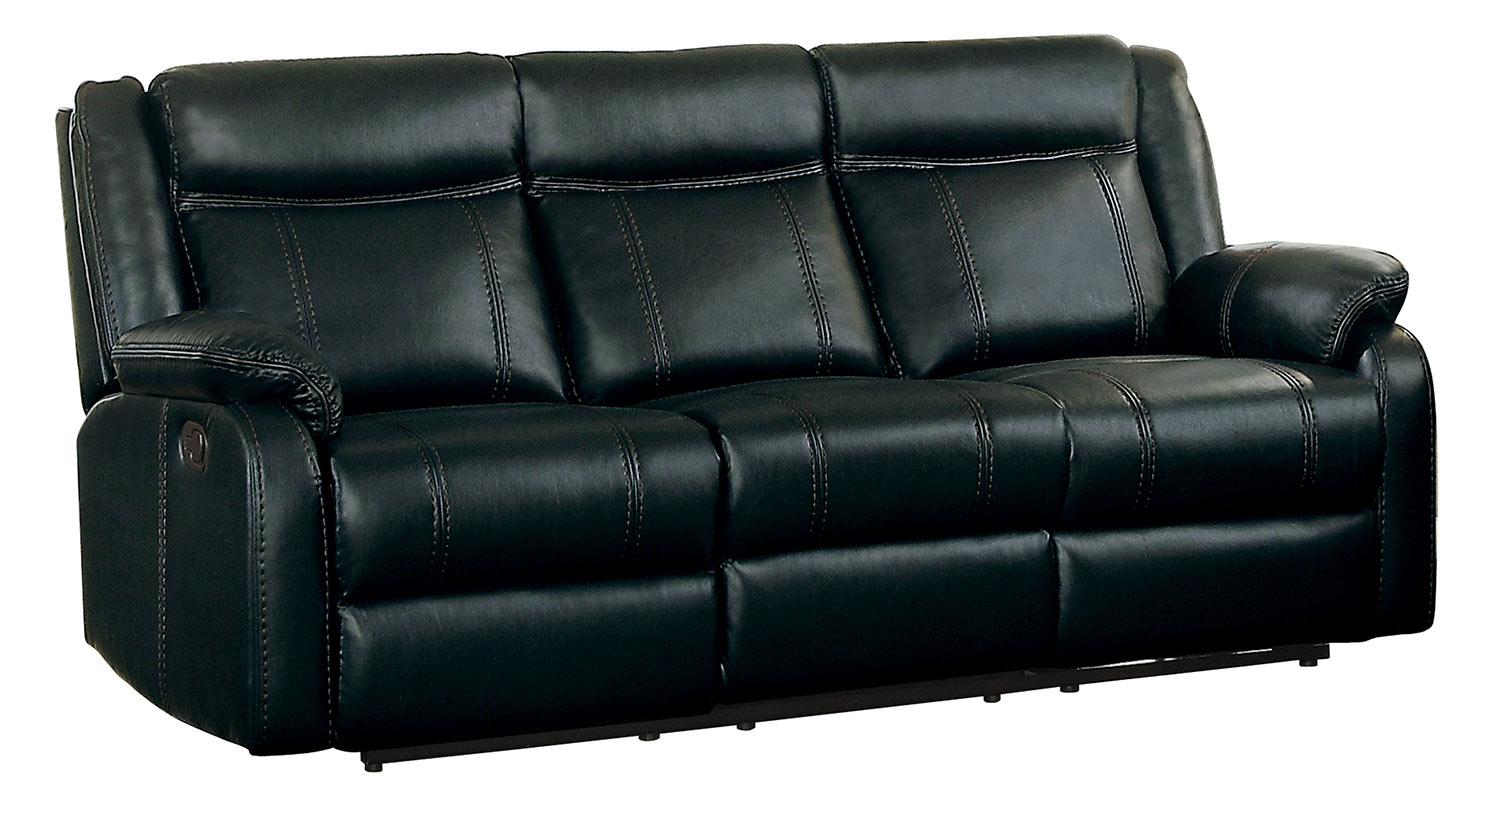 Homelegance Jude Black Double Reclining Sofa With Center Drop Down Cup Holder